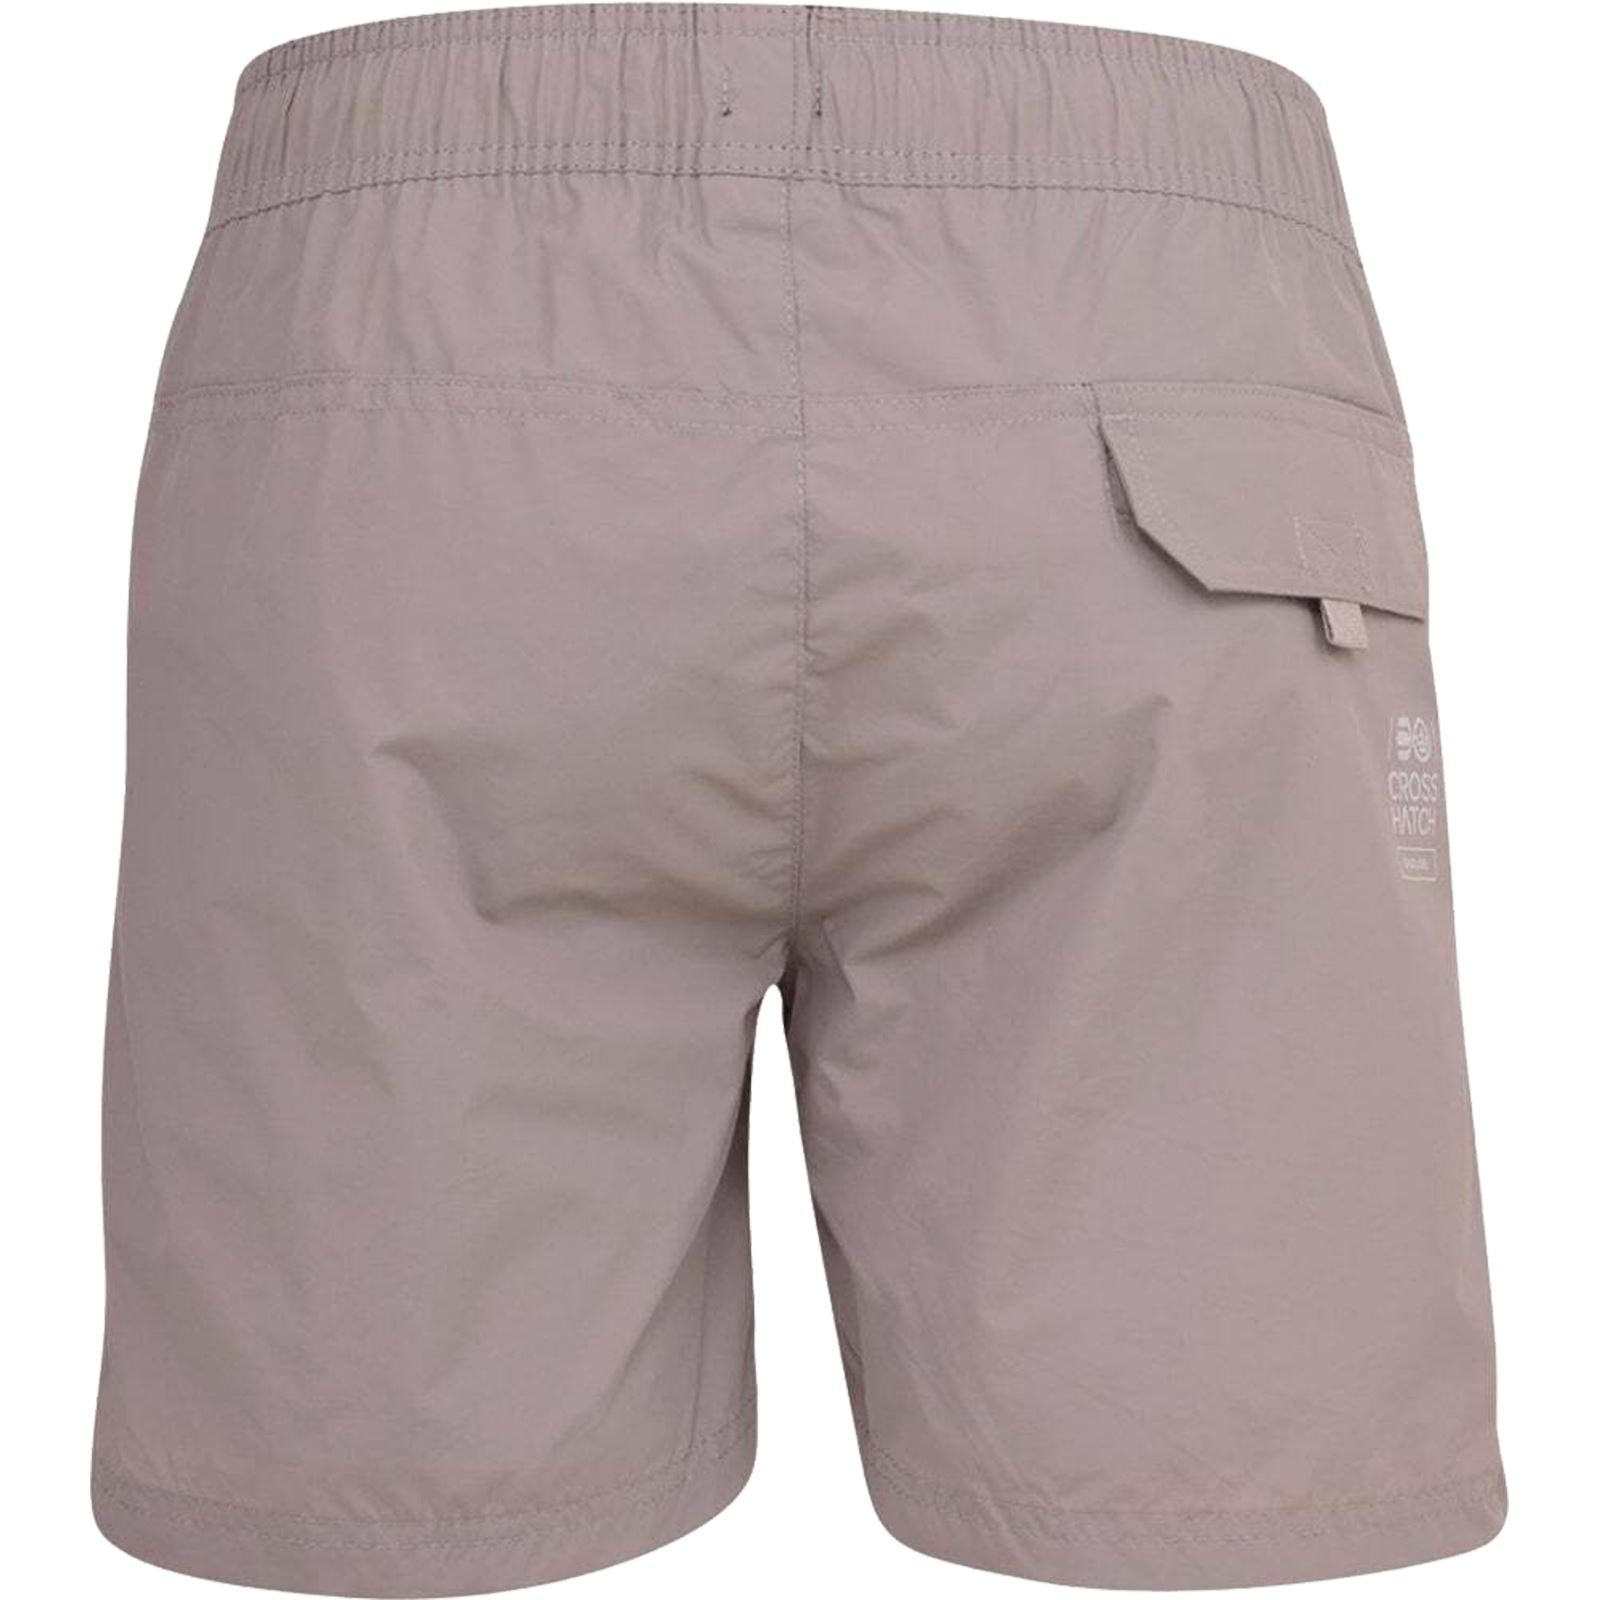 Mens-Crosshatch-Shorts-Drawcord-Mesh-Lined-Designer-Beach-Casual-Swimming-Trunks thumbnail 12